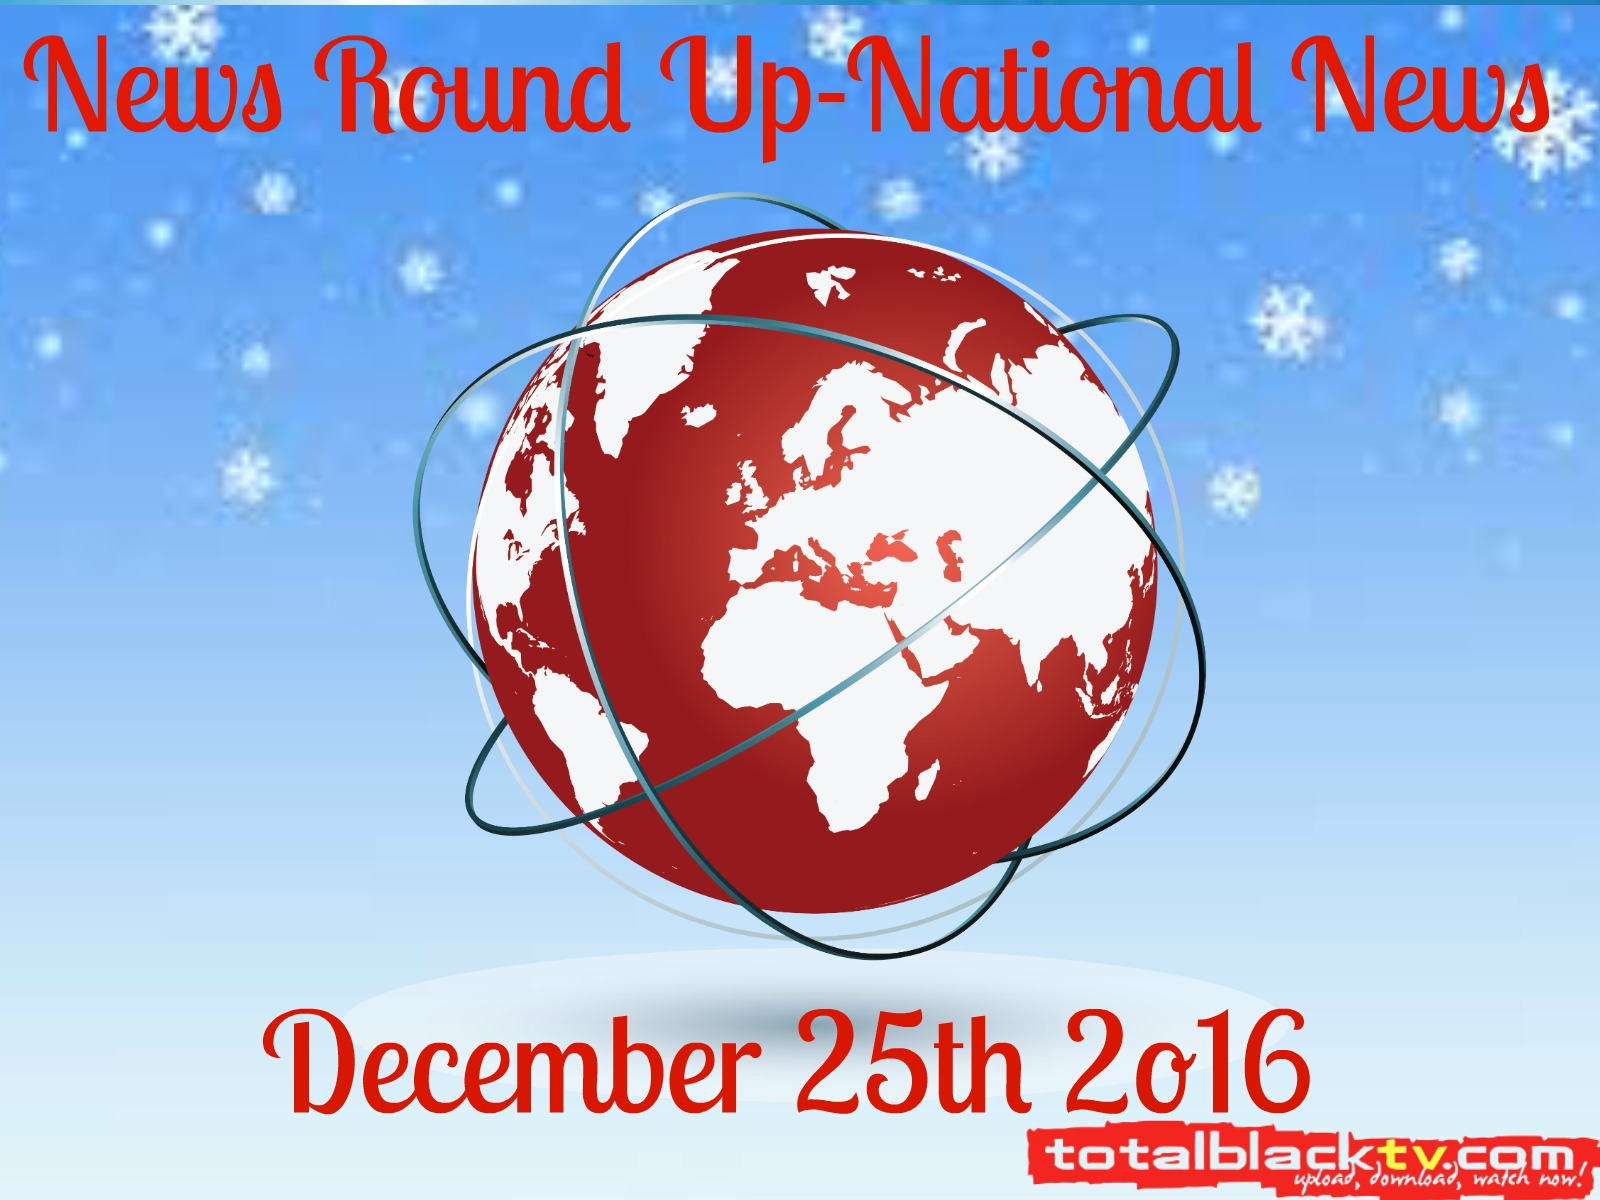 National~News Roundup 12/24/16